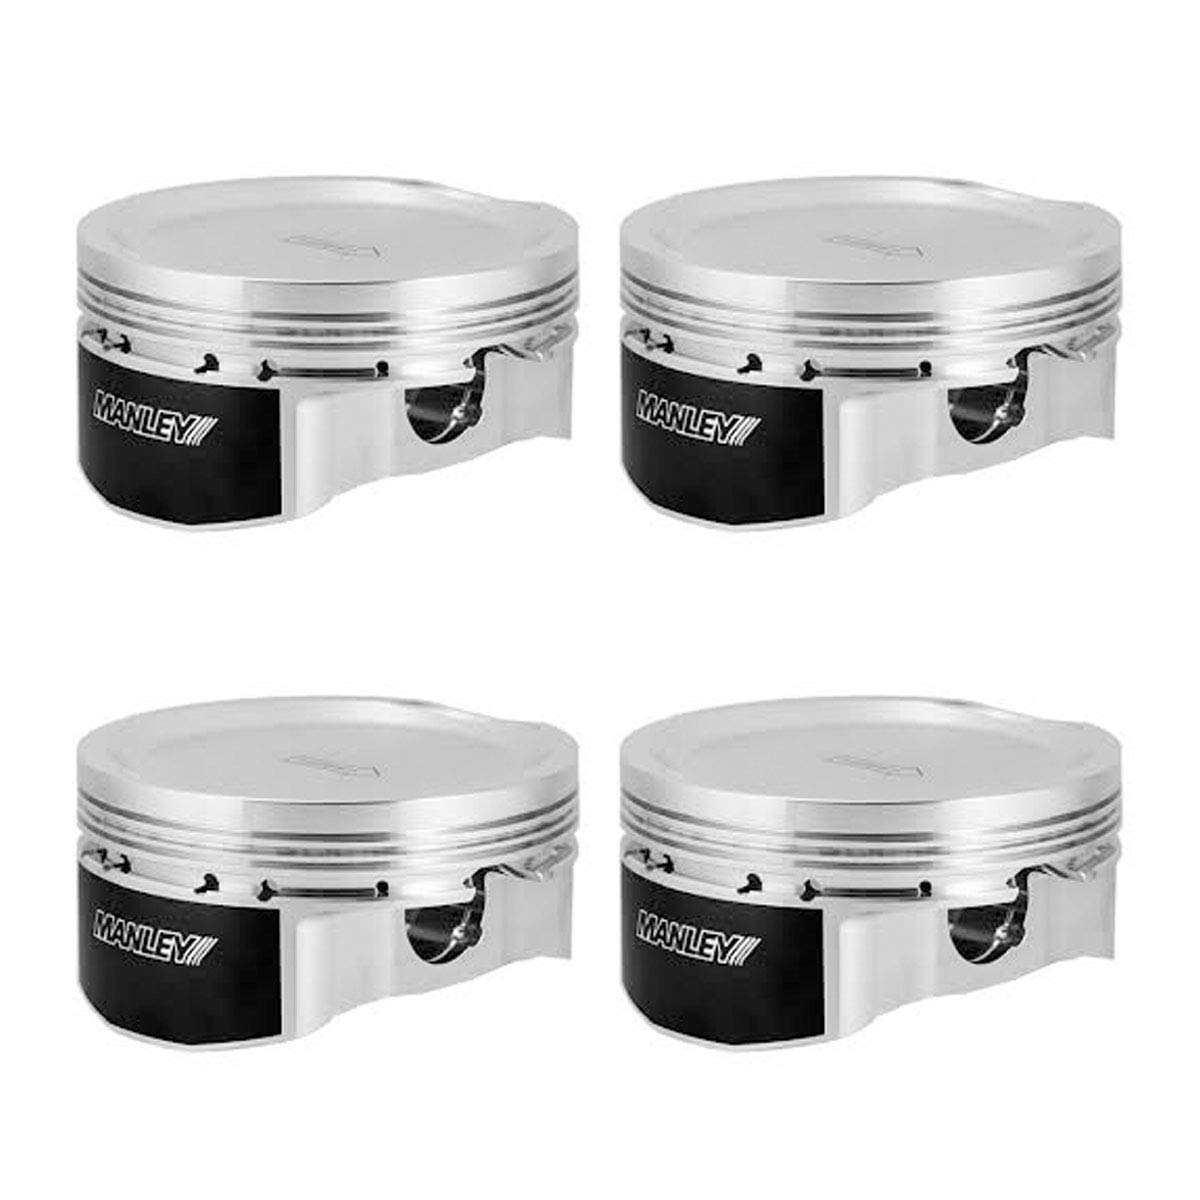 Manley 632102CE-4 Piston Kit Set 04+ Subaru WRX 99.75mm +.25mm Size Bore 9.8 CR Extreme Duty F//T with Rings